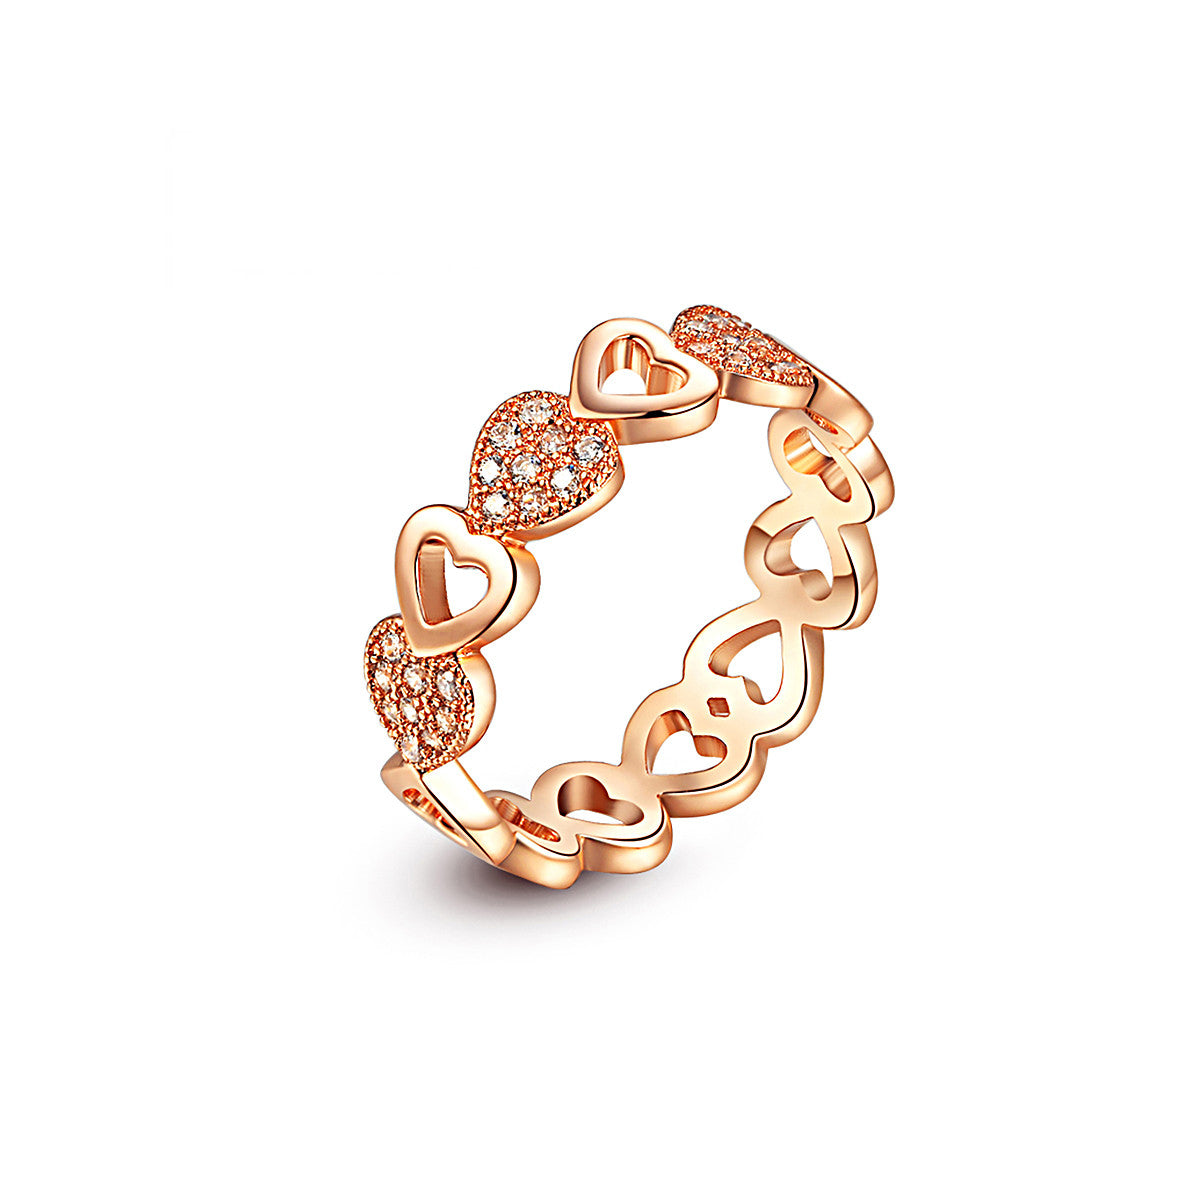 Rose Gold Hollow HeartShaped Ring EverMarker